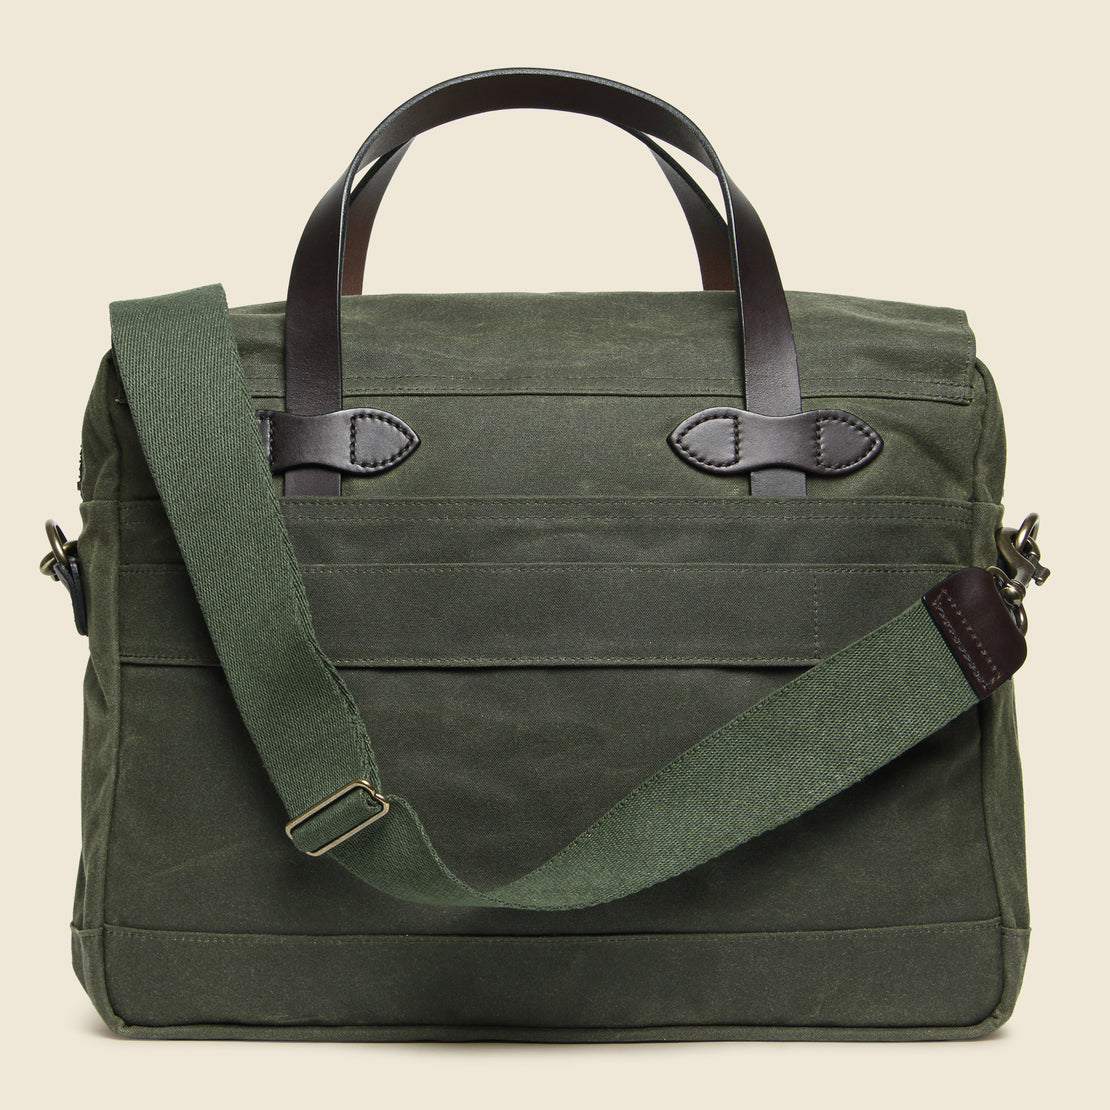 24 Hour Tin Briefcase - Otter Green